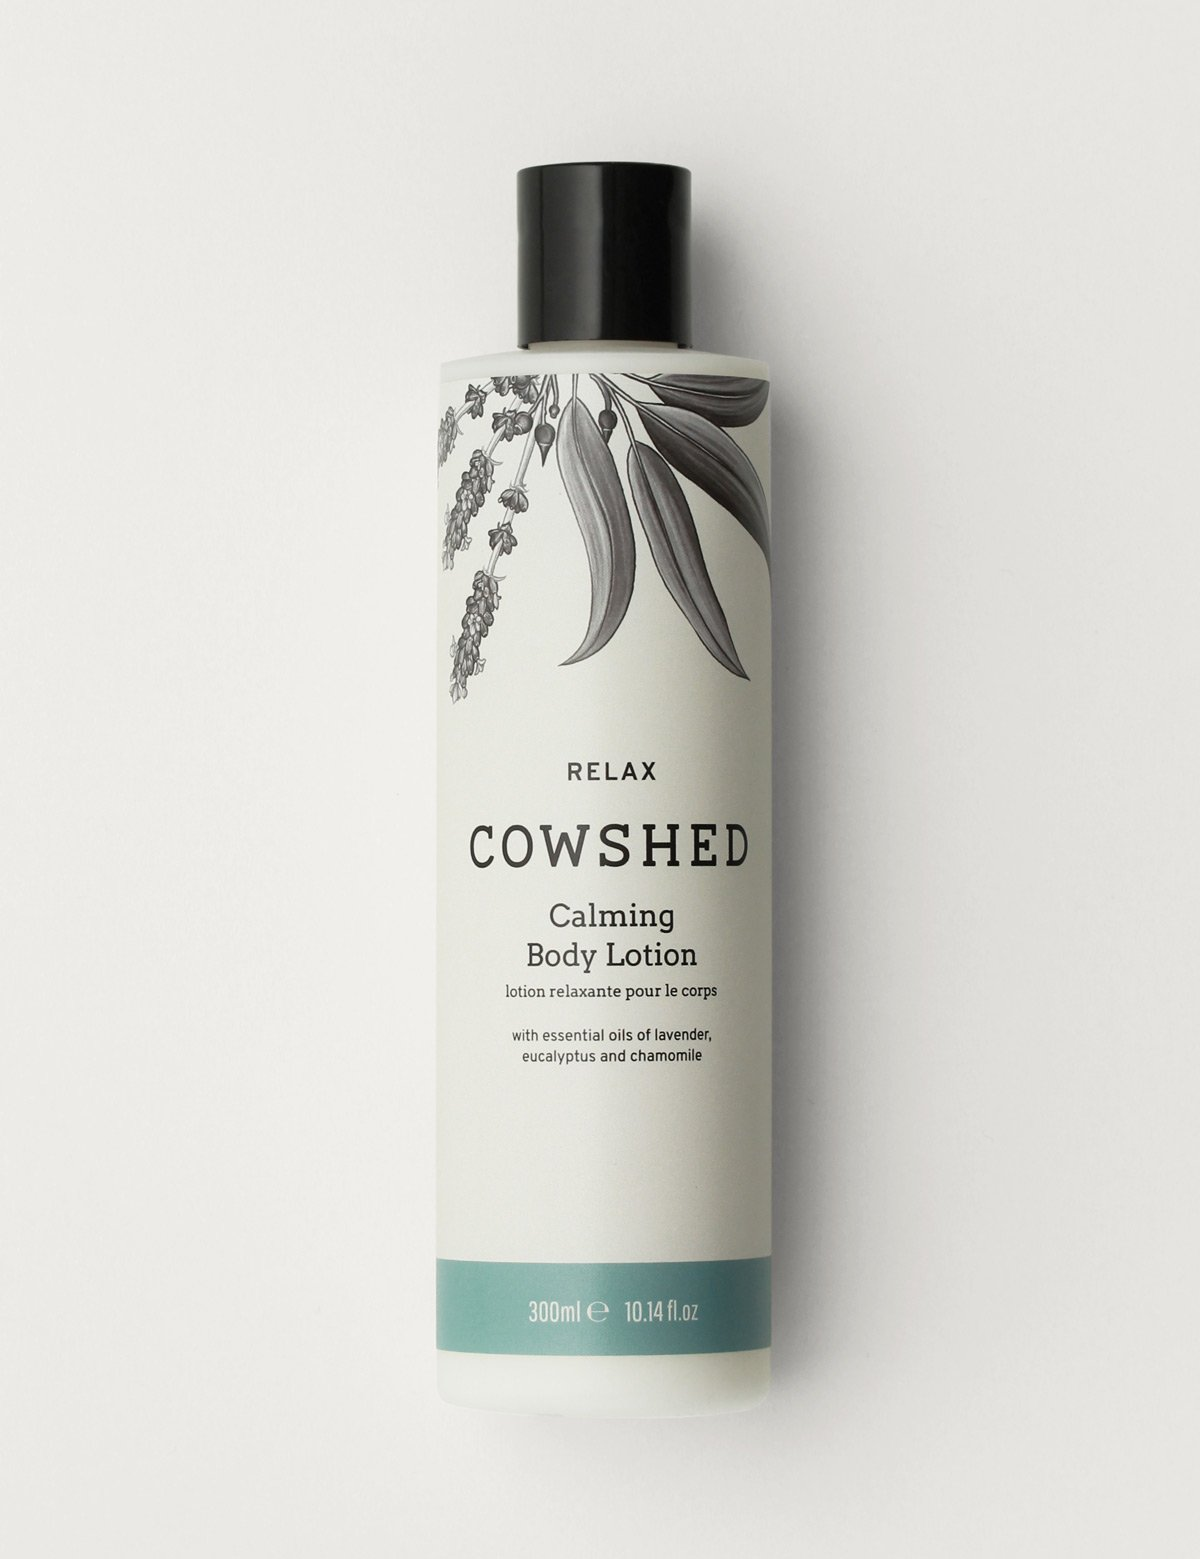 Cowshed Branding Packaging by Spinach Design